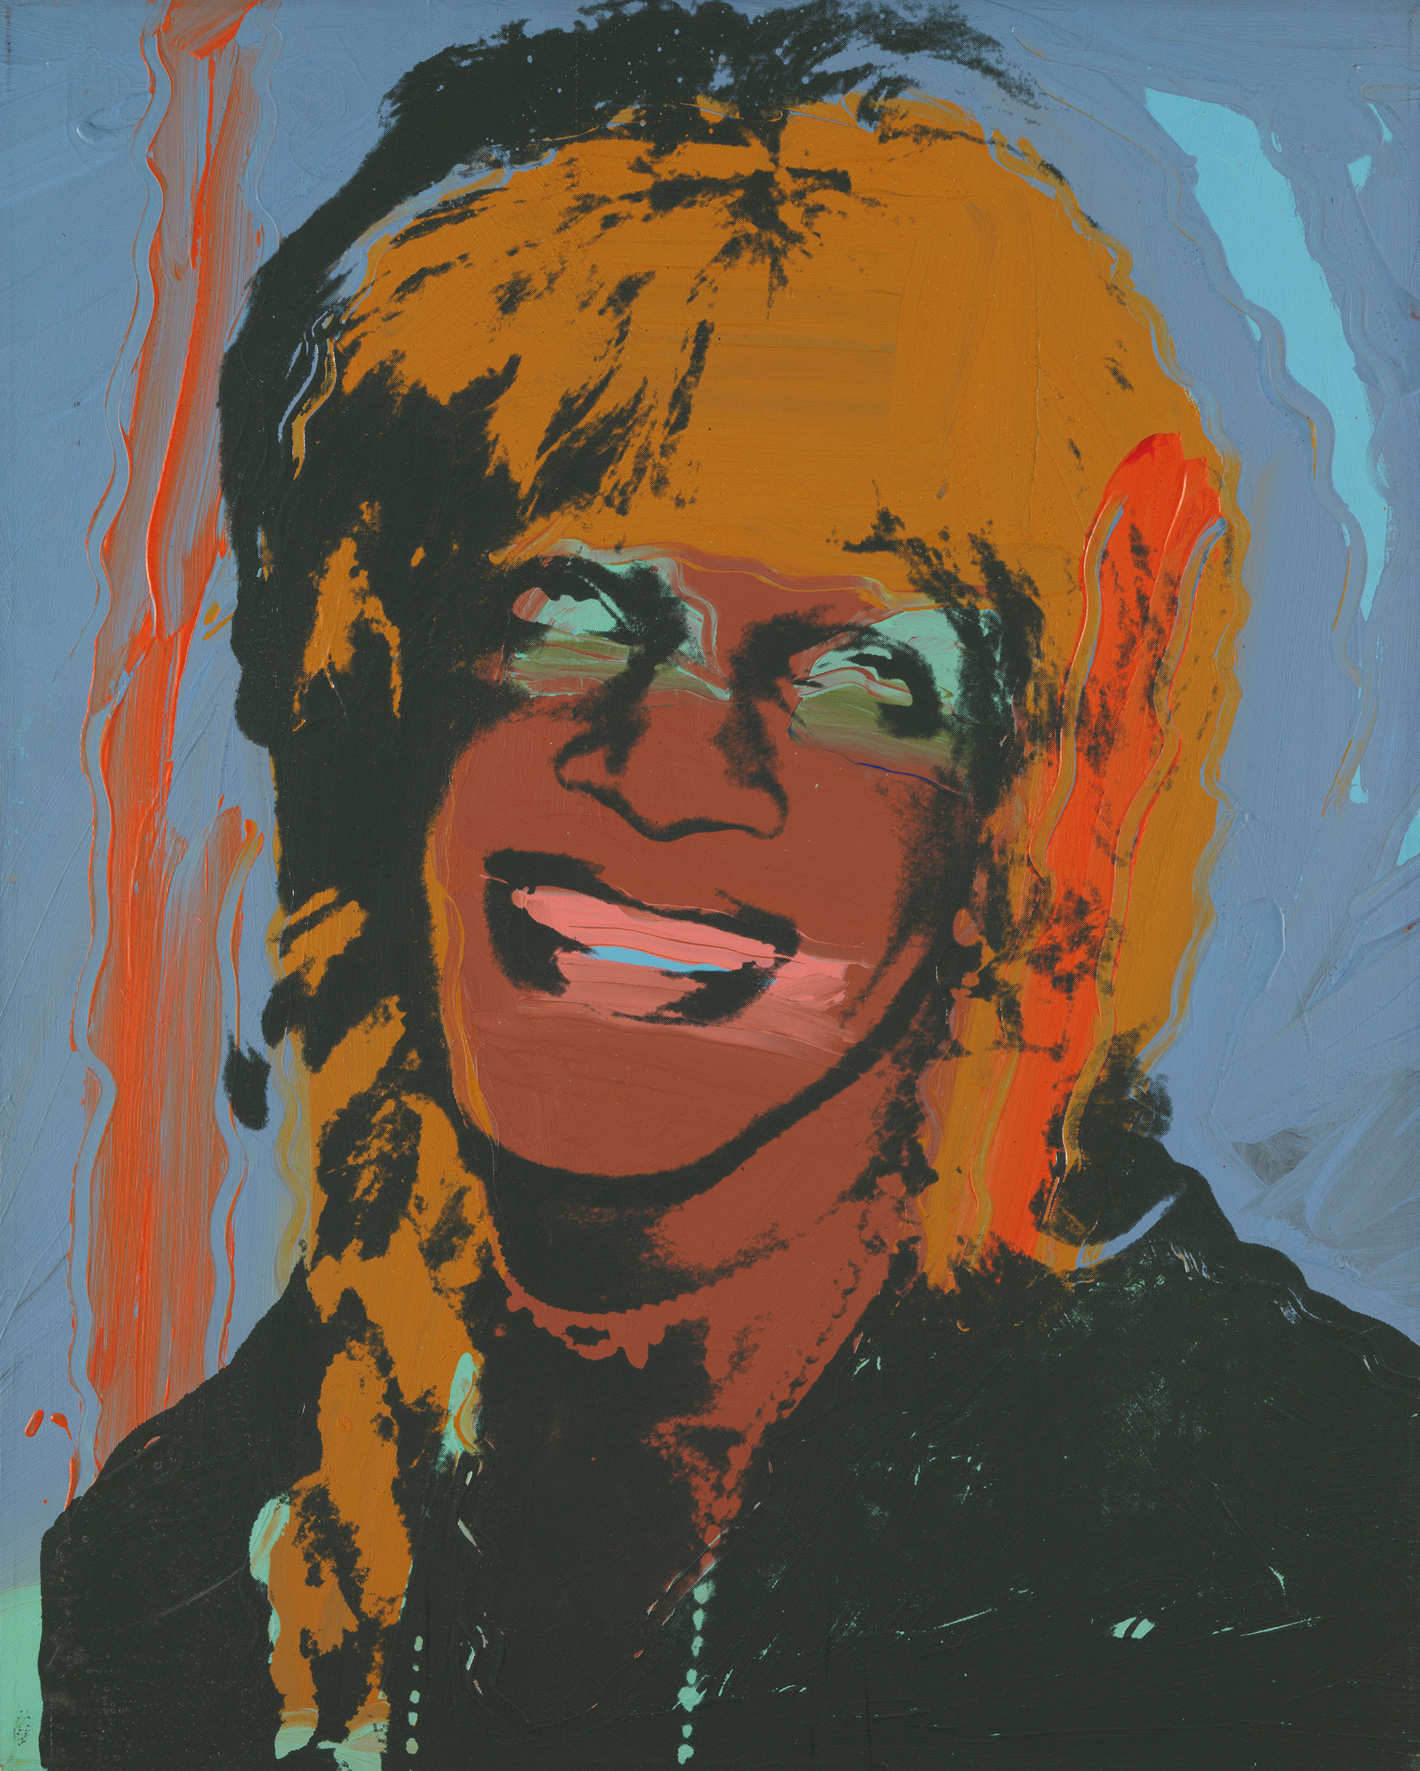 7_ladies_and_gentlemen_marsha_p_johnson.nocrop.w710.h2147483647.2x